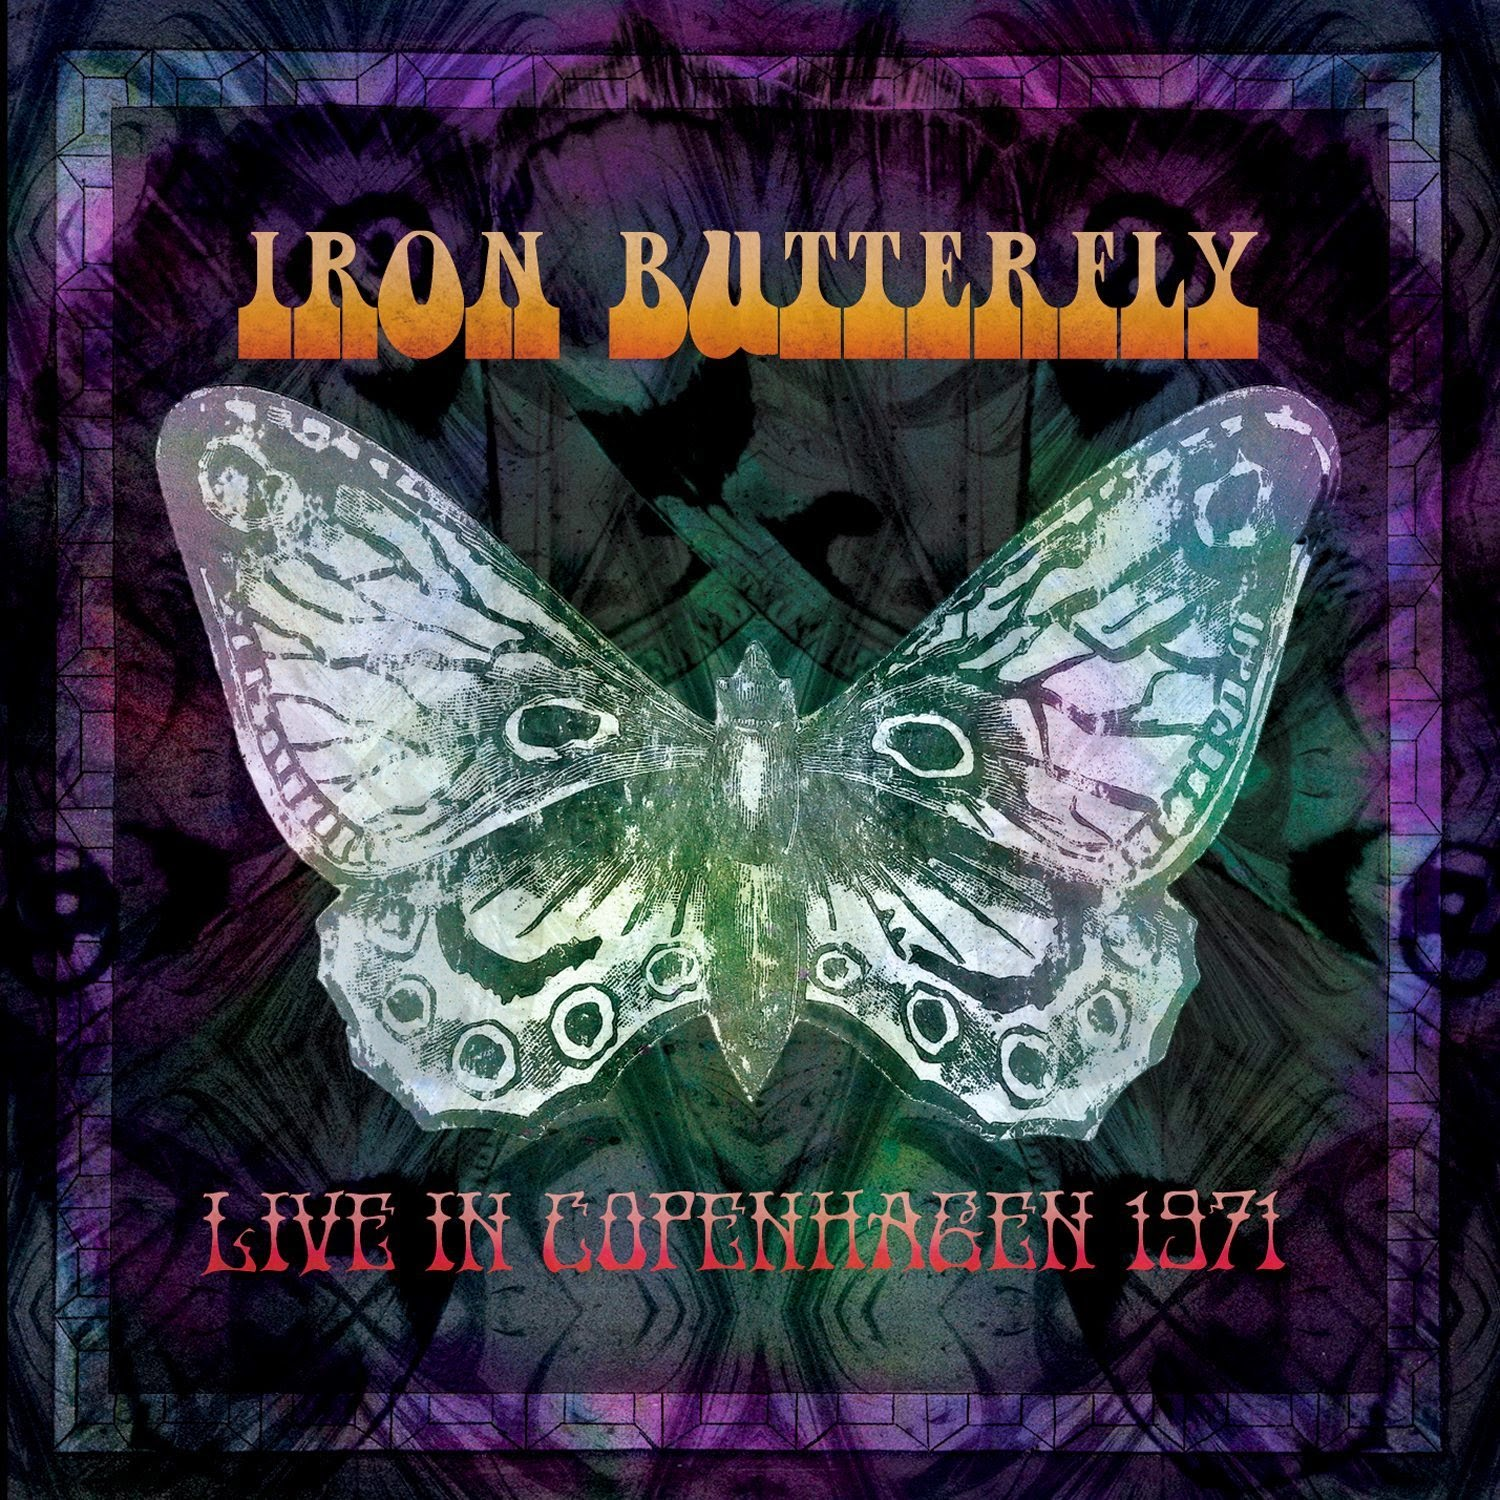 Iron Butterfly's Live In Copenhagen 1971